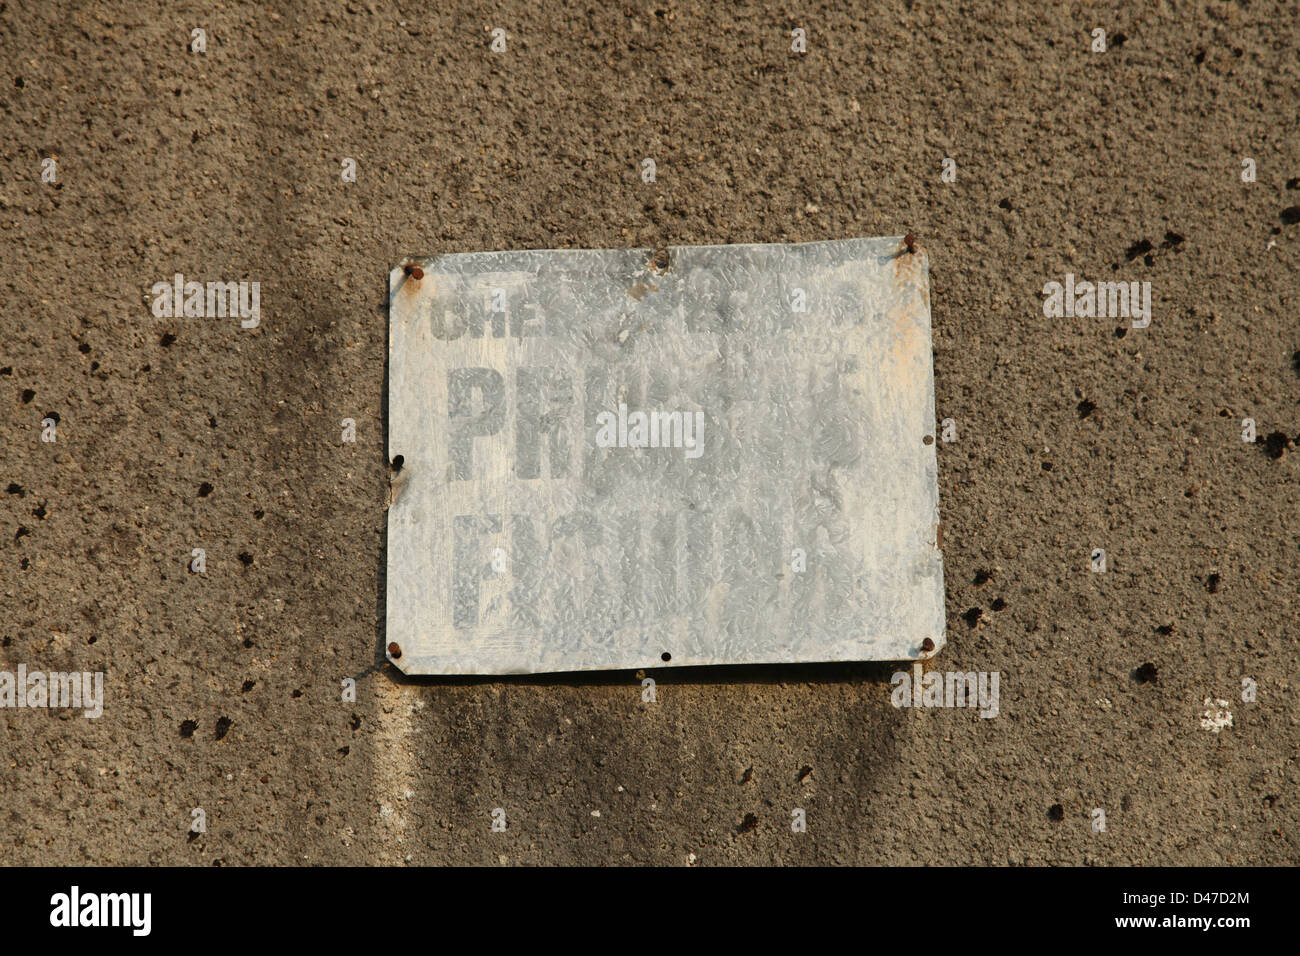 Worn out sign - Stock Image